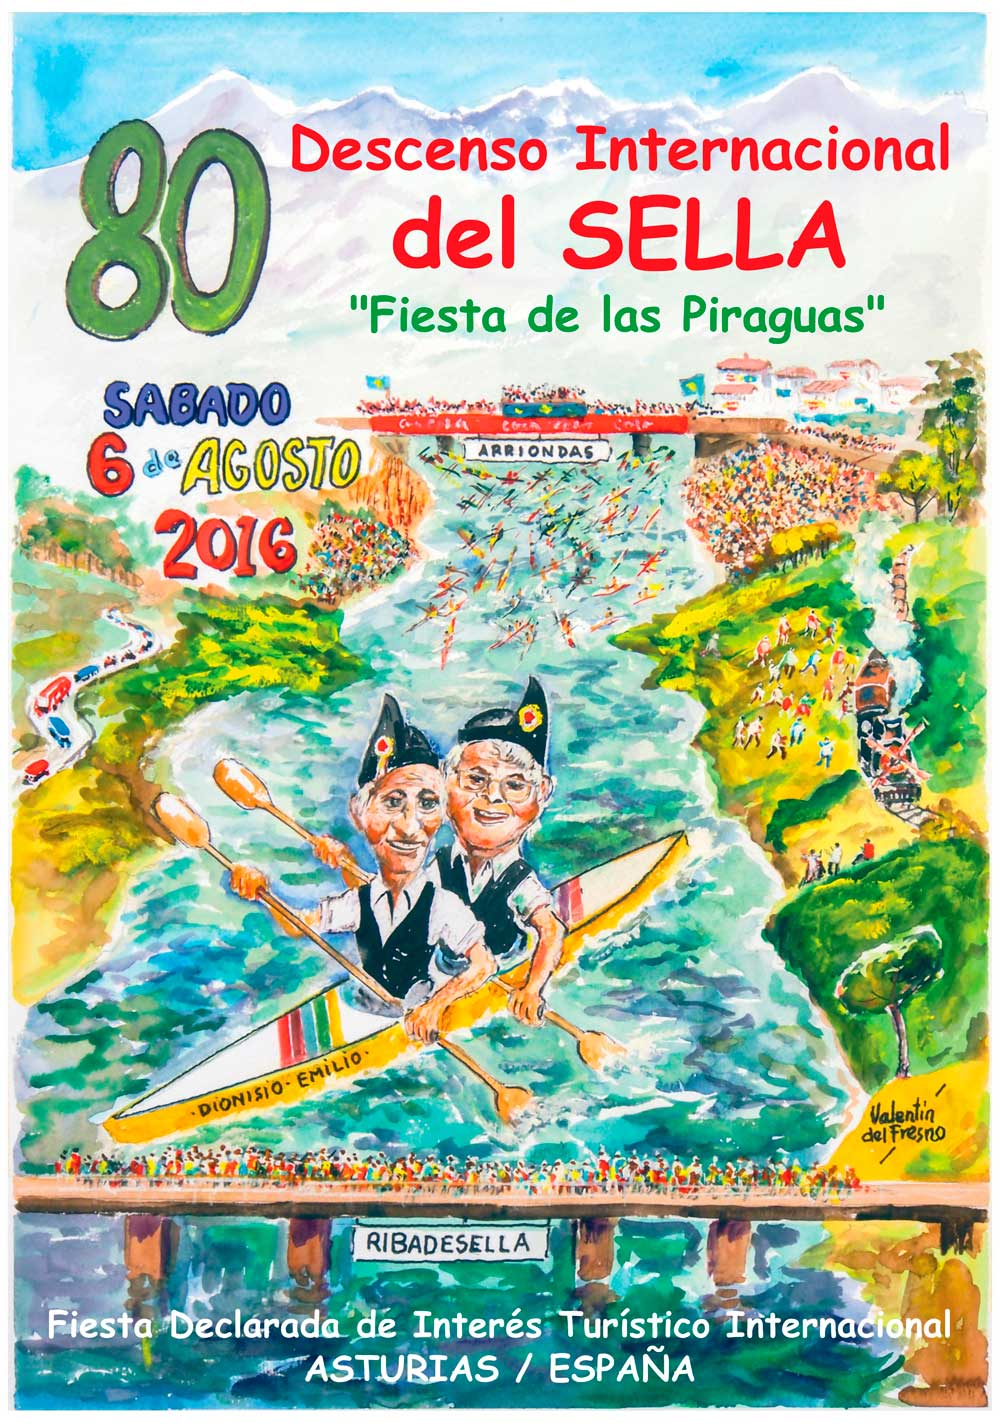 Cartel de la 80 Descenso Internacional del Sella